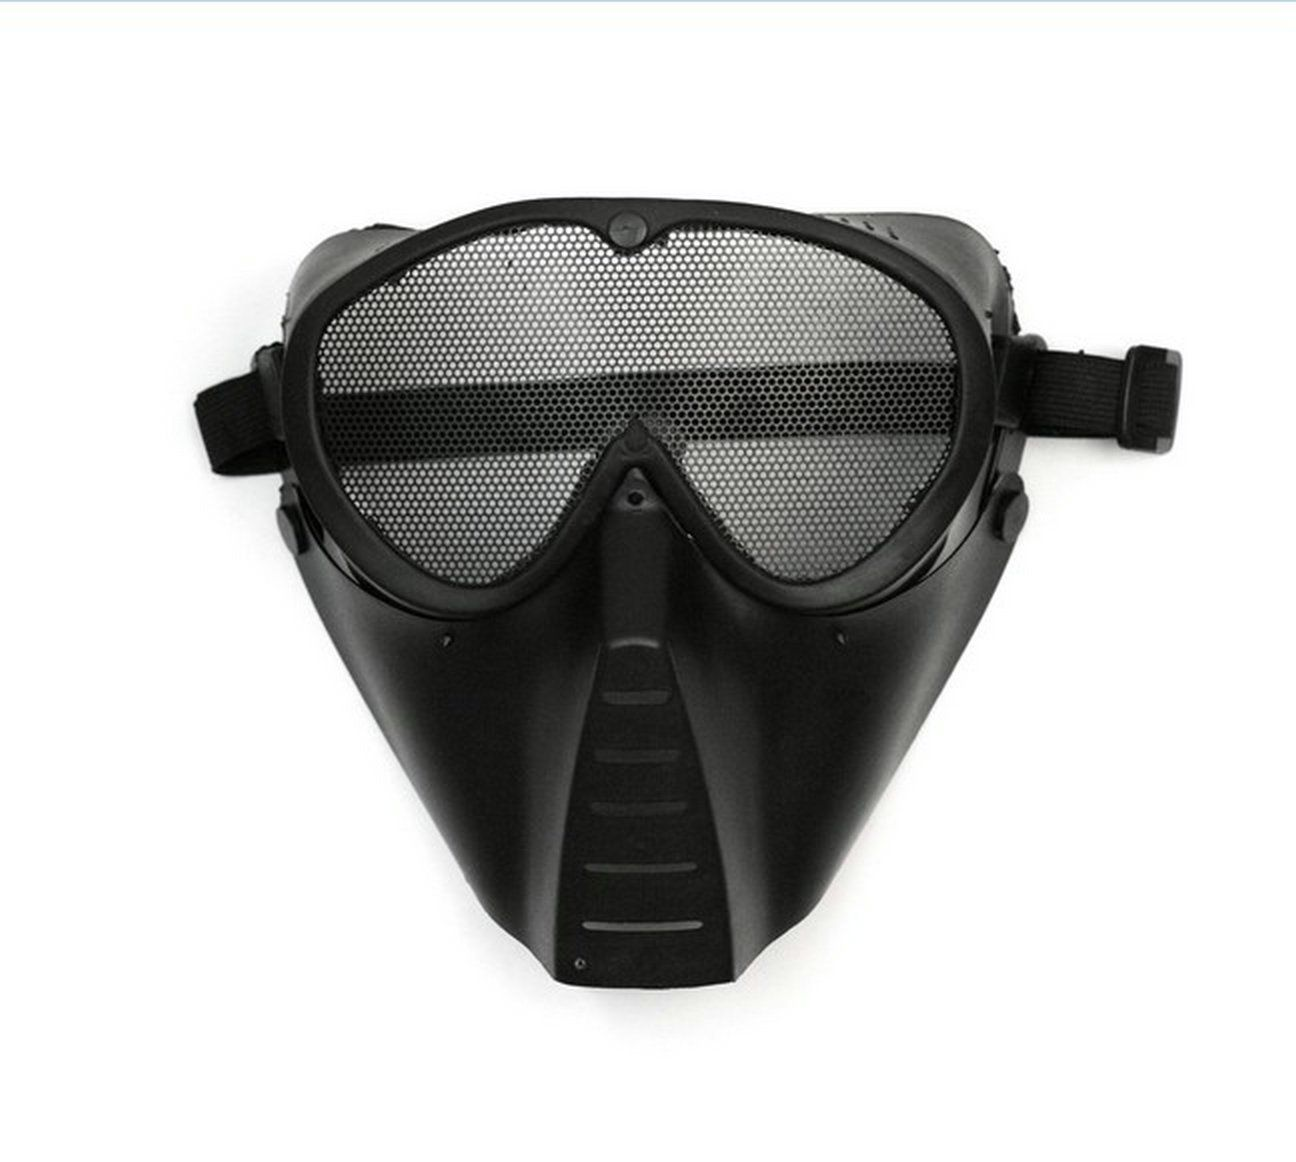 Amazon.com : TMC Sport Gear Tactical Airsoft Metal Mesh Lower Face ...